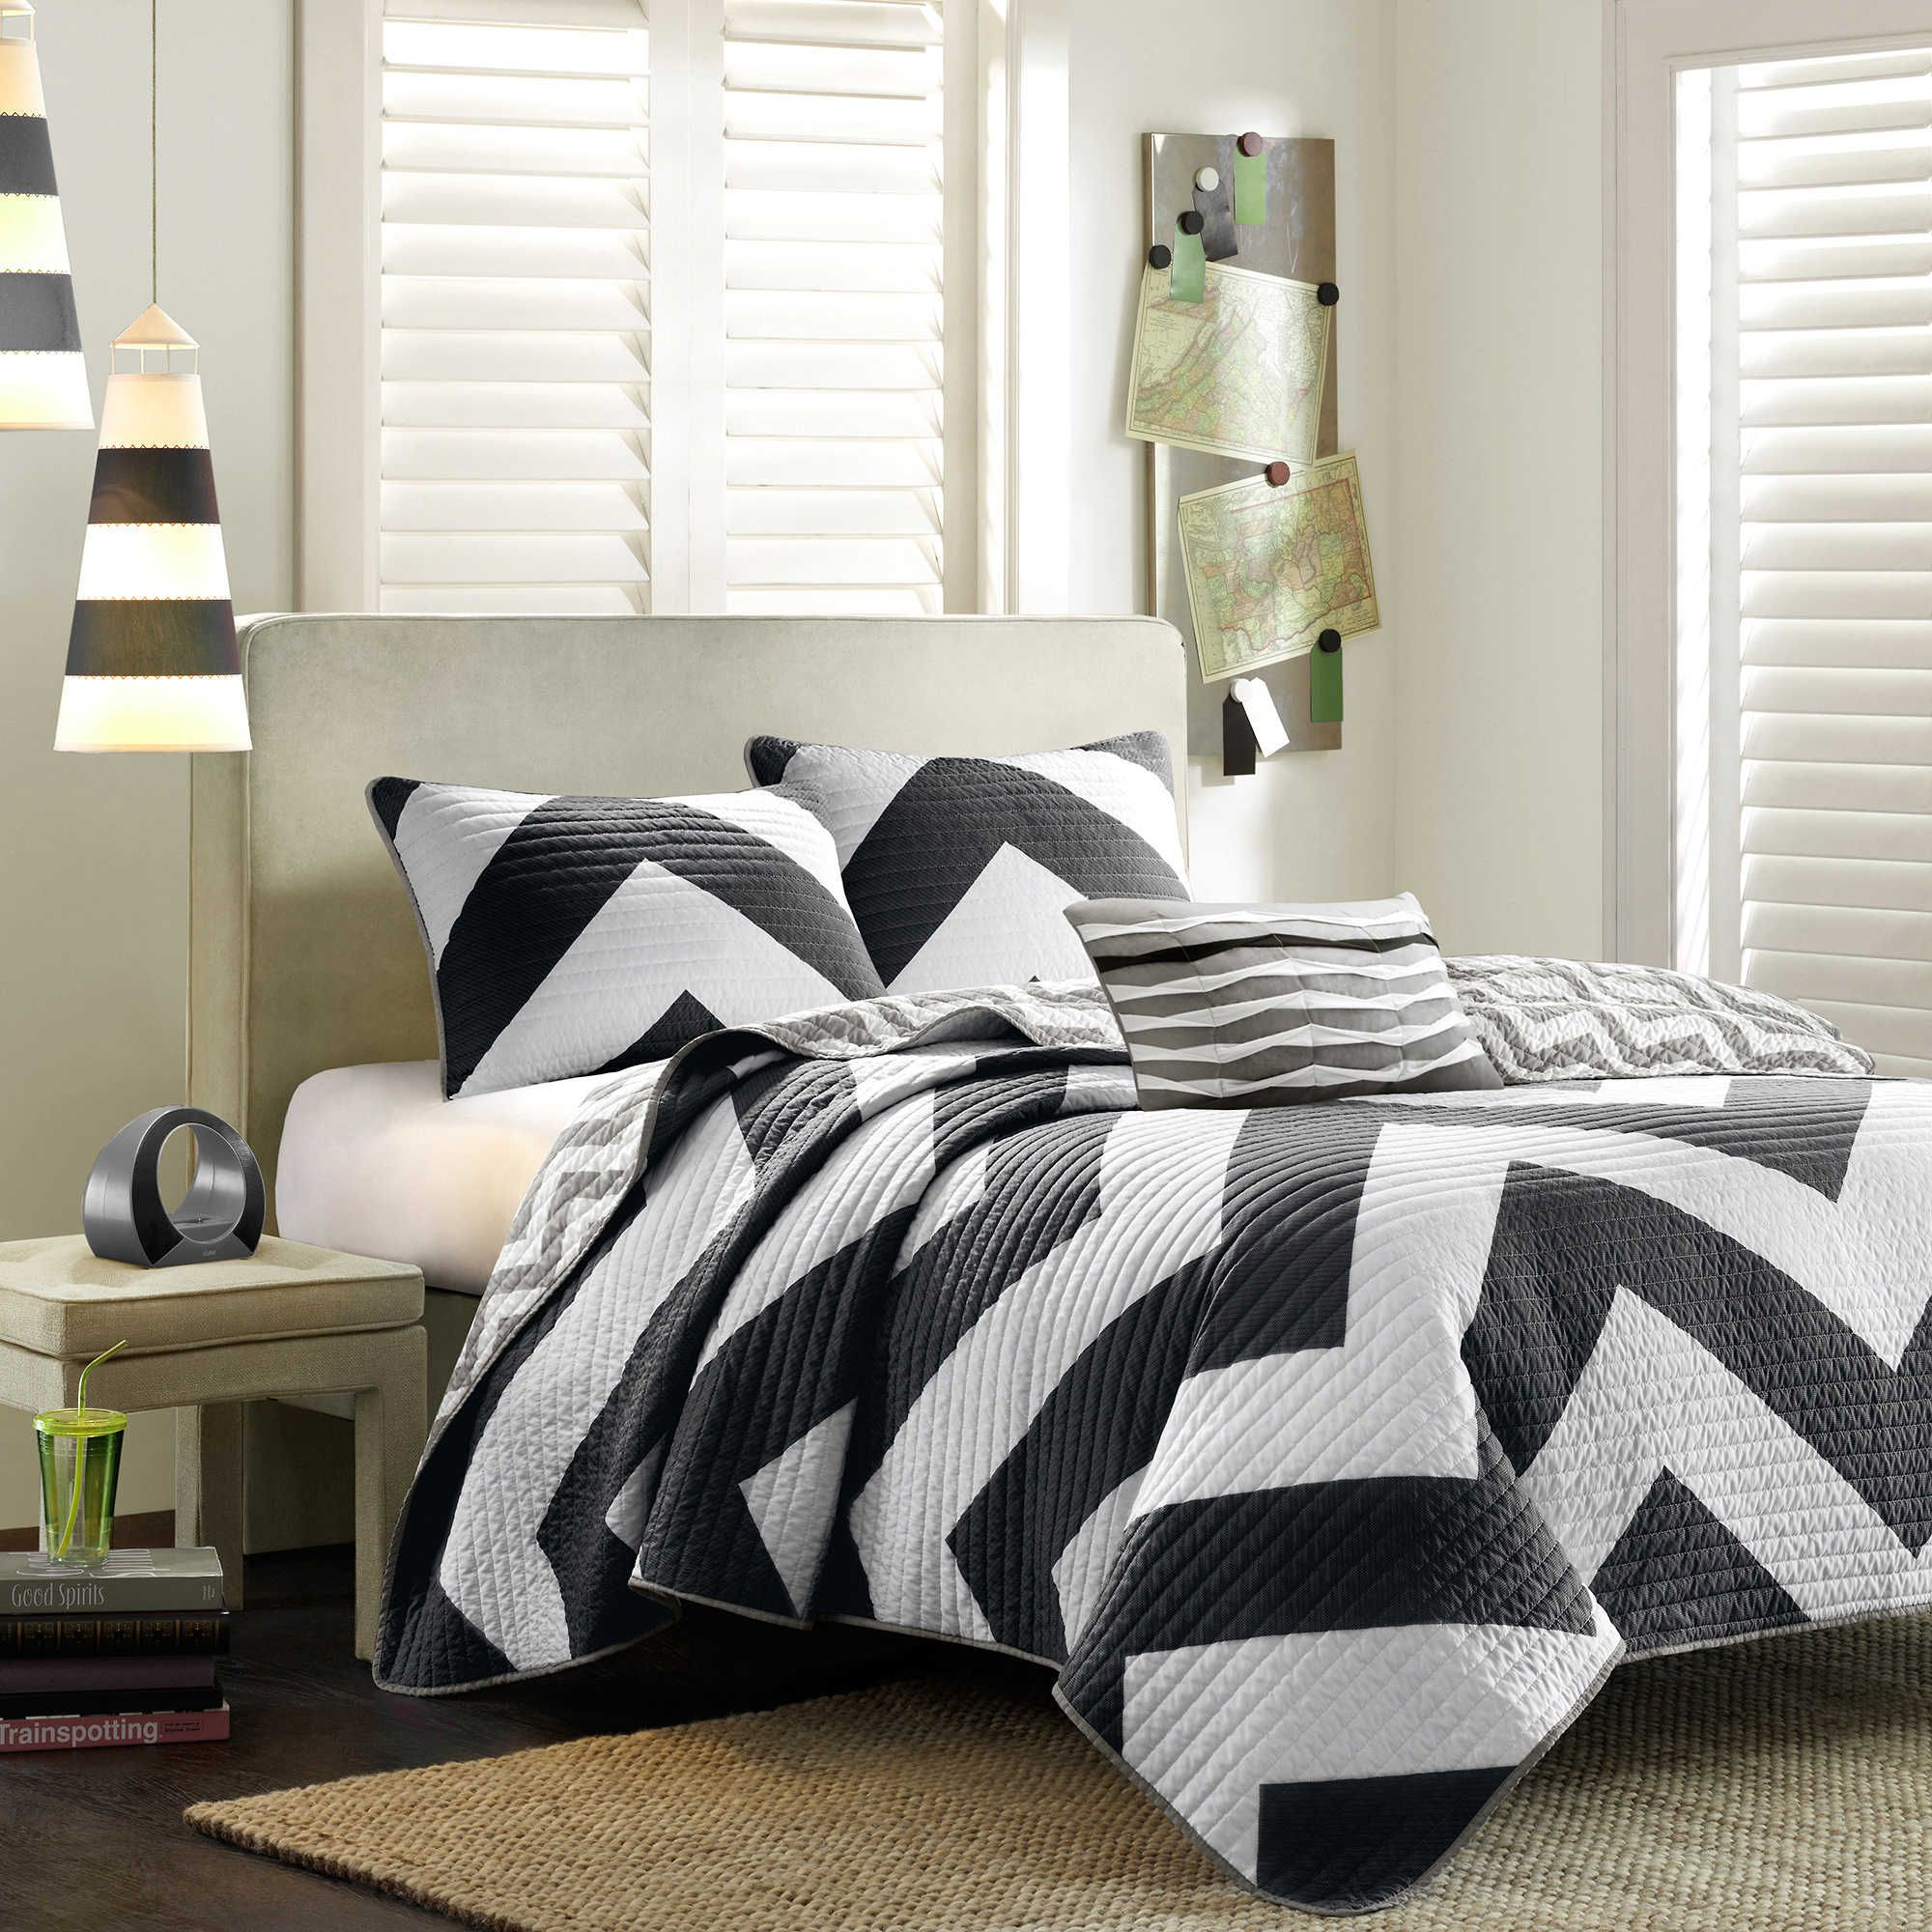 Give Your Bedroom A Modern Touch With The Eye Catching Mi Zone Reversible  Libra Coverlet Set. Decked Out In 2 Super Chic Grey And White Chevronu2026